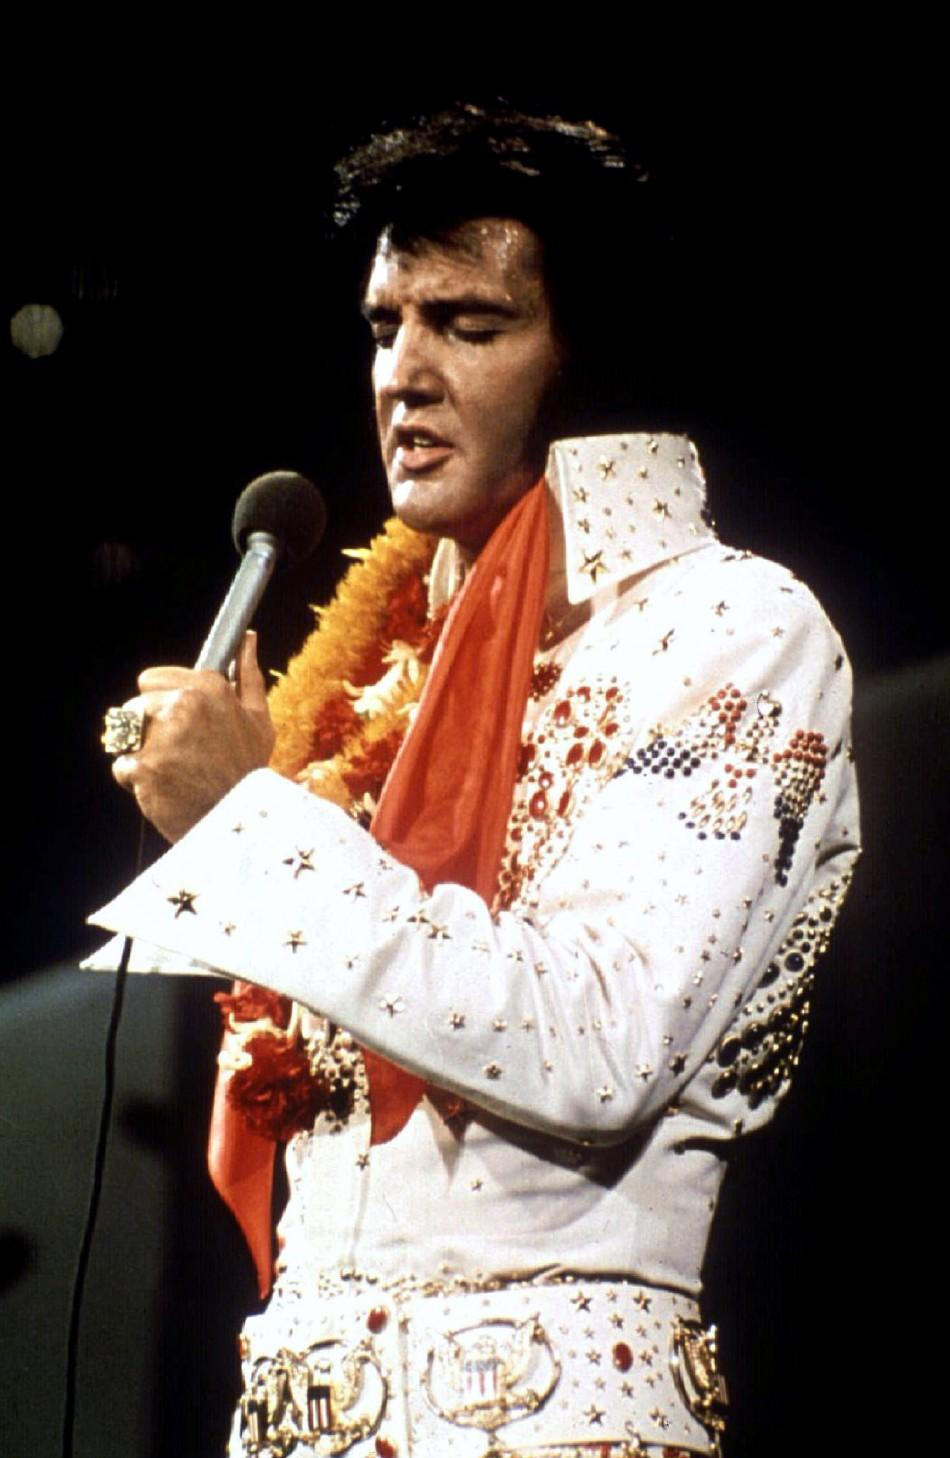 """FILE PHOTO 1972 - Elvis Presley performs in concert during his """"Aloha From Hawaii"""" 1972 television s.."""